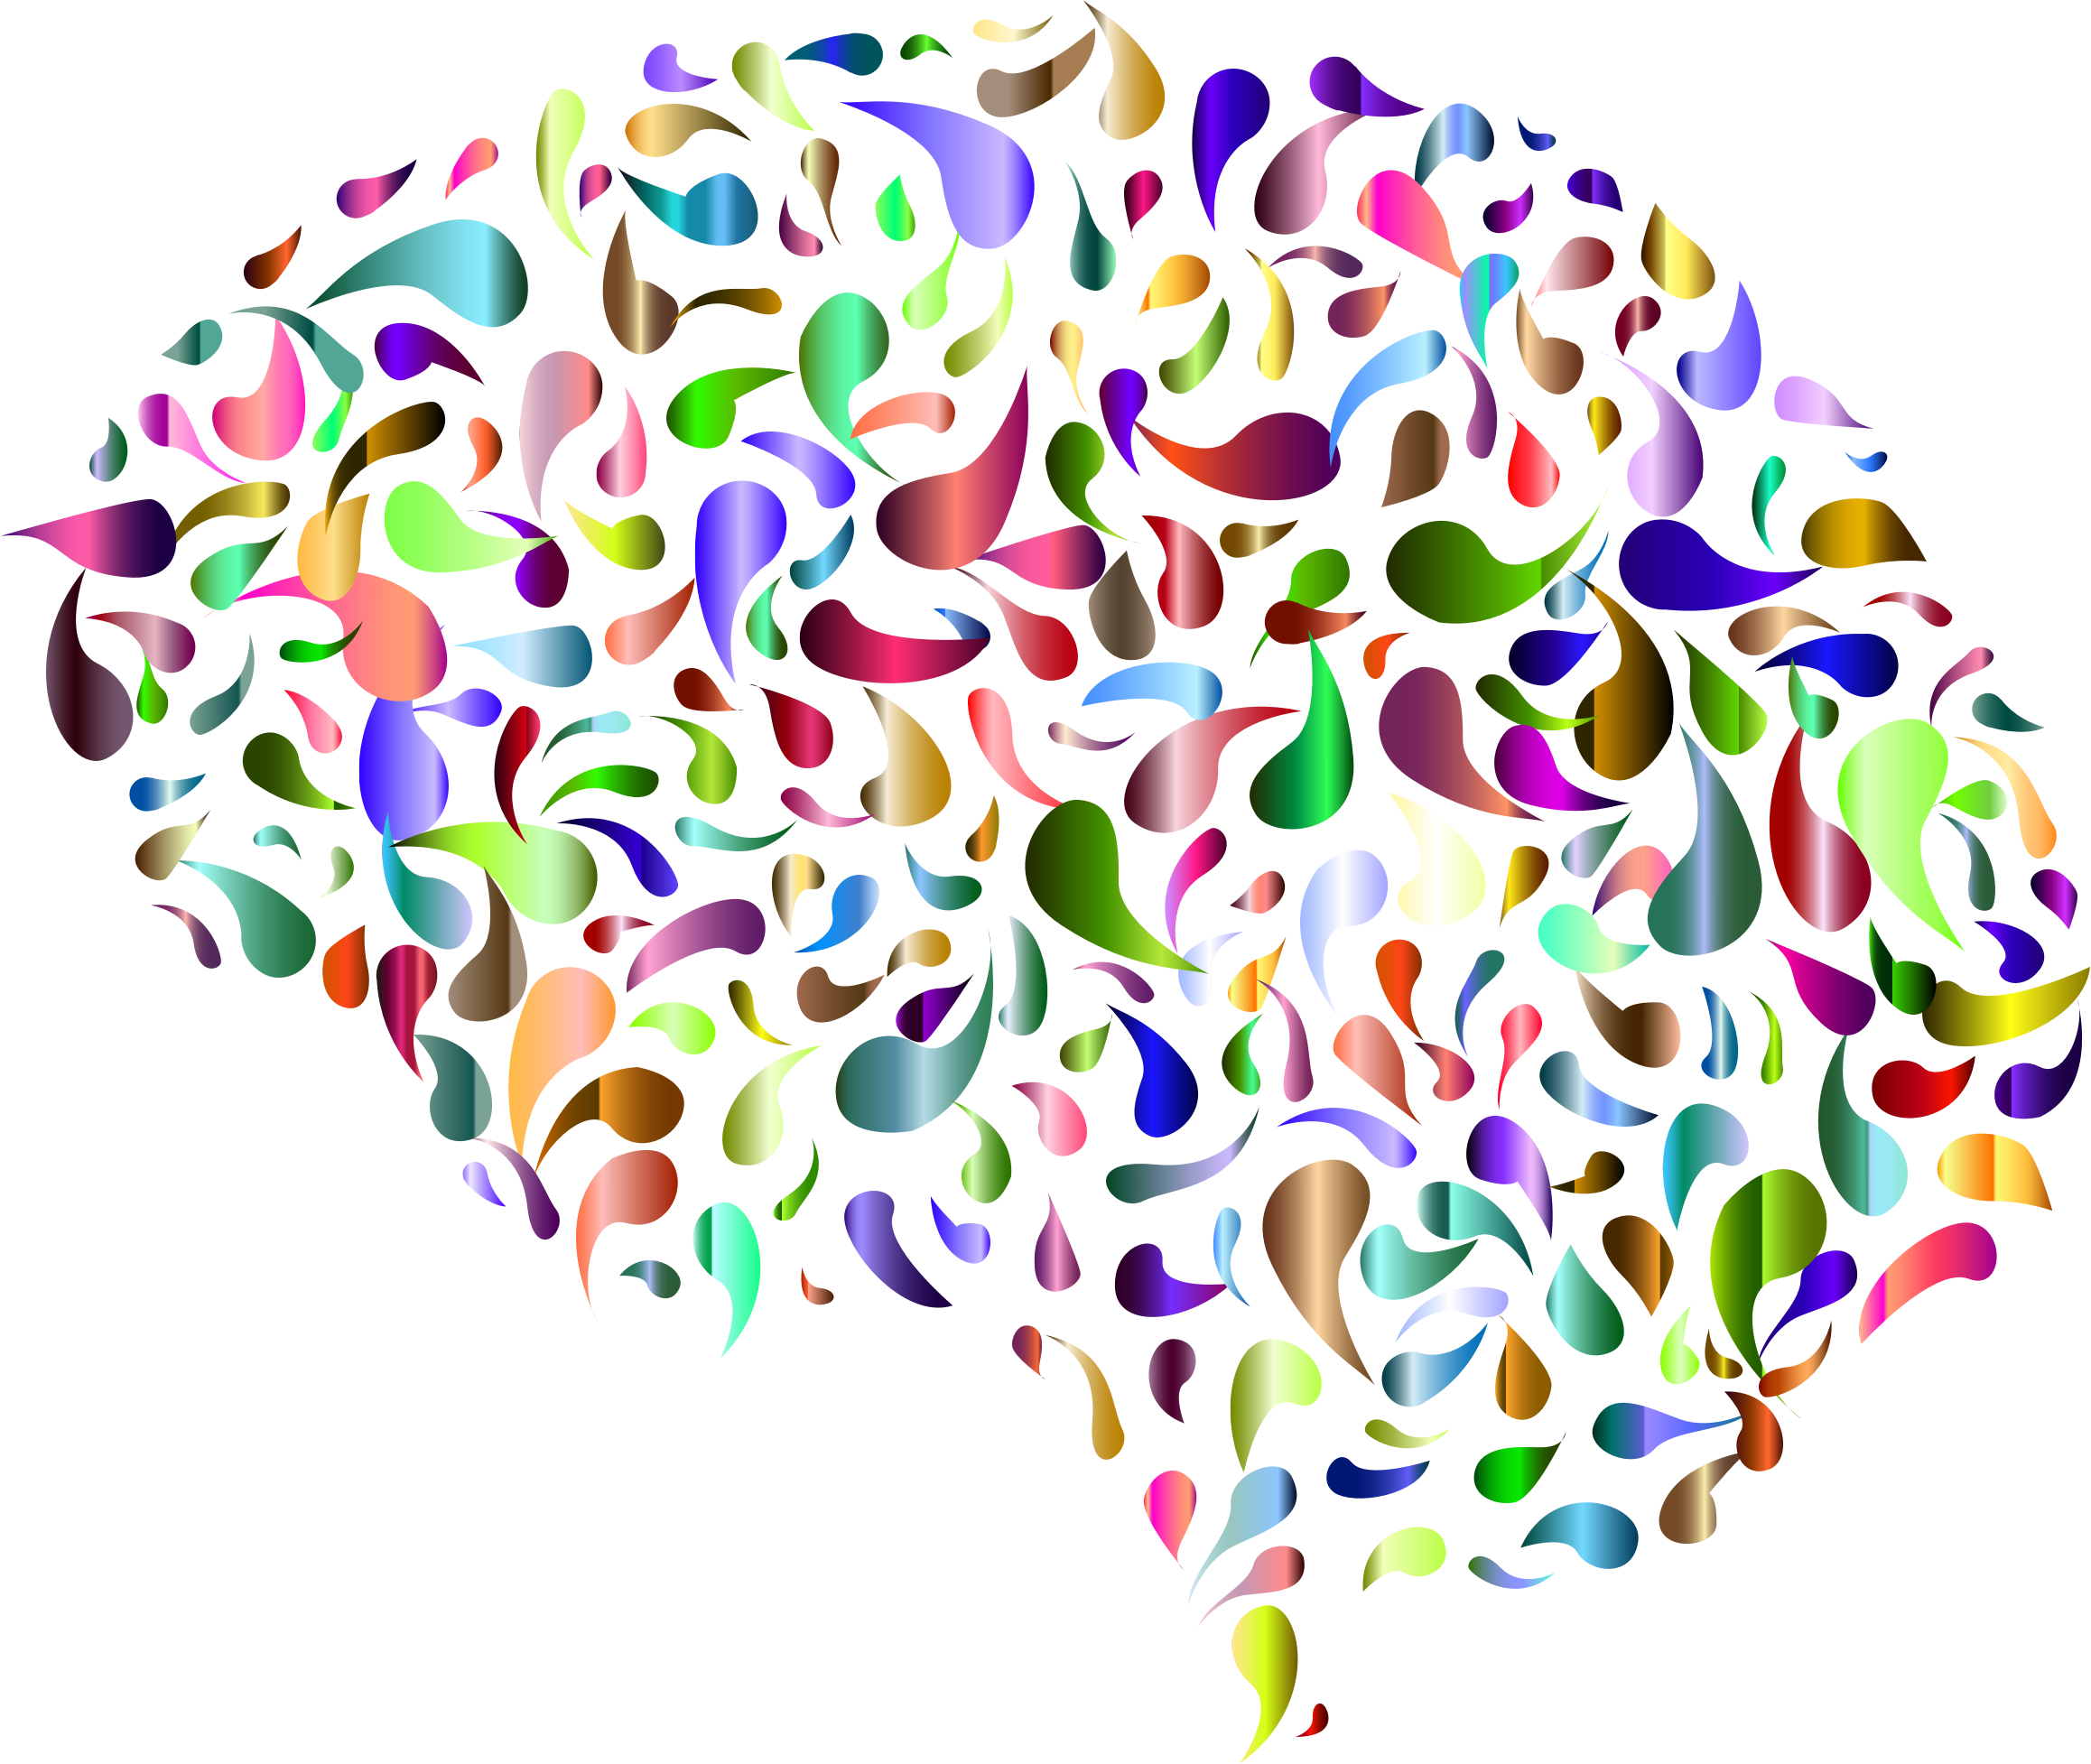 Clipart brain abstract, Clipart brain abstract Transparent.